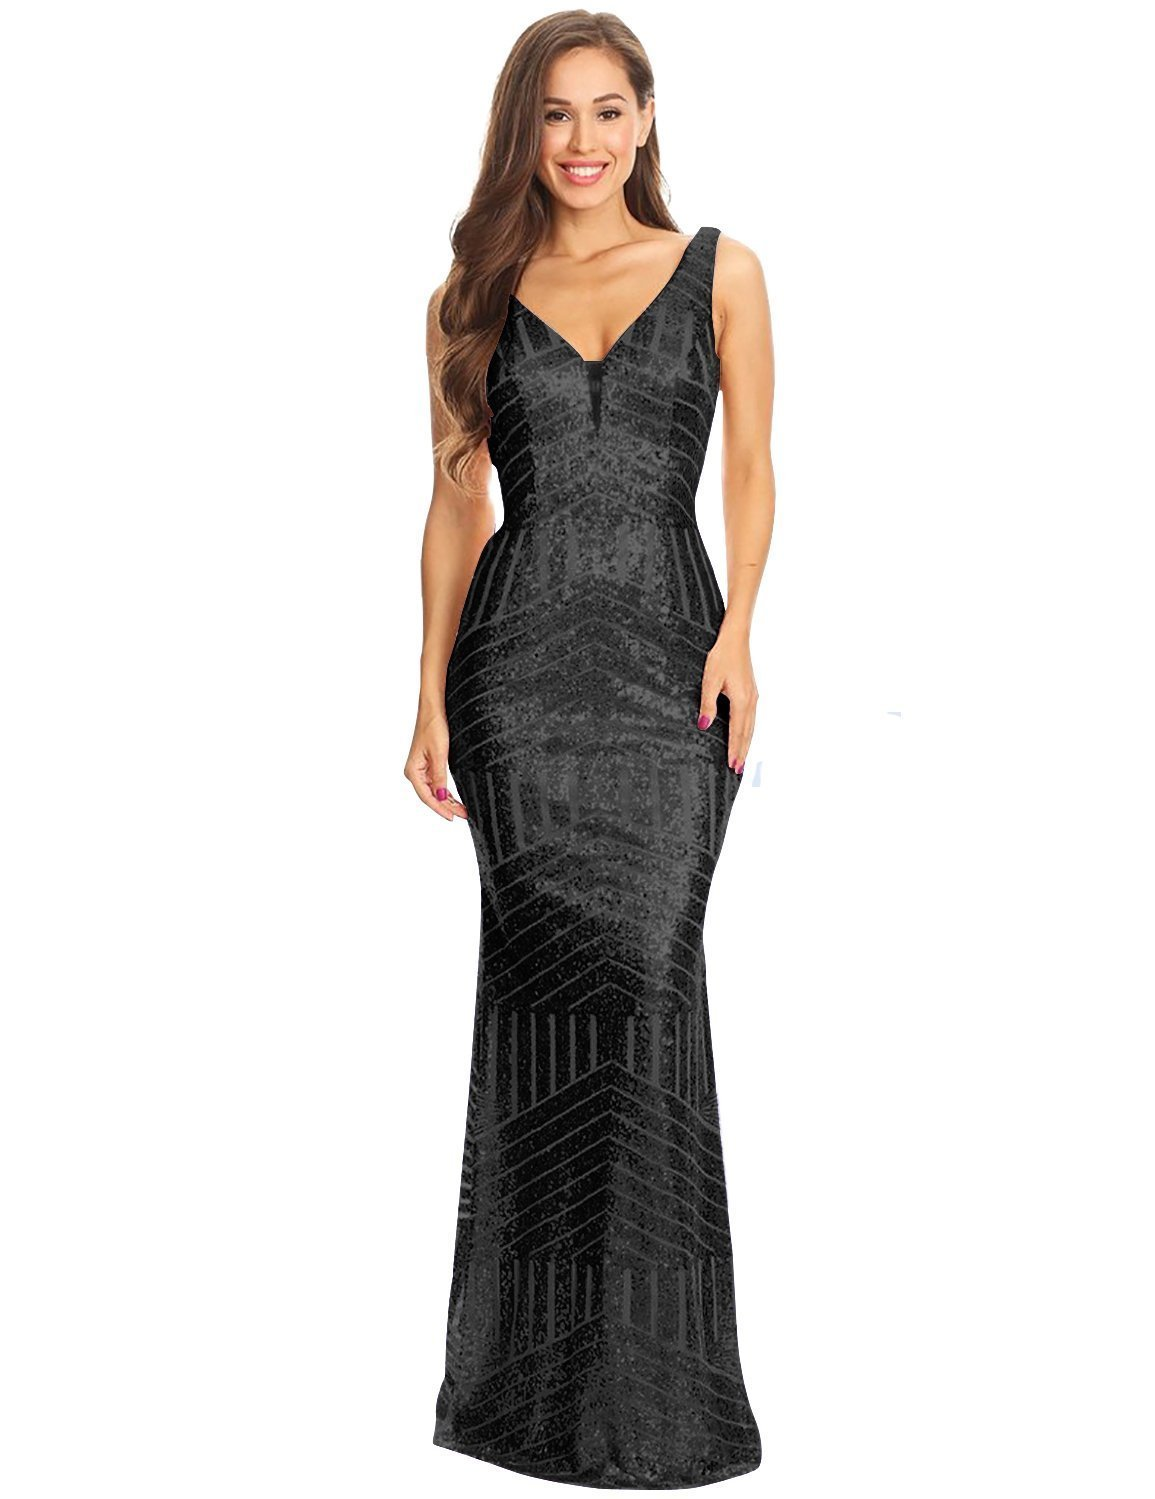 Women's 2018 Sequin Mermaid Long Prom Dress Empire Waist V Neck Evening Gowns